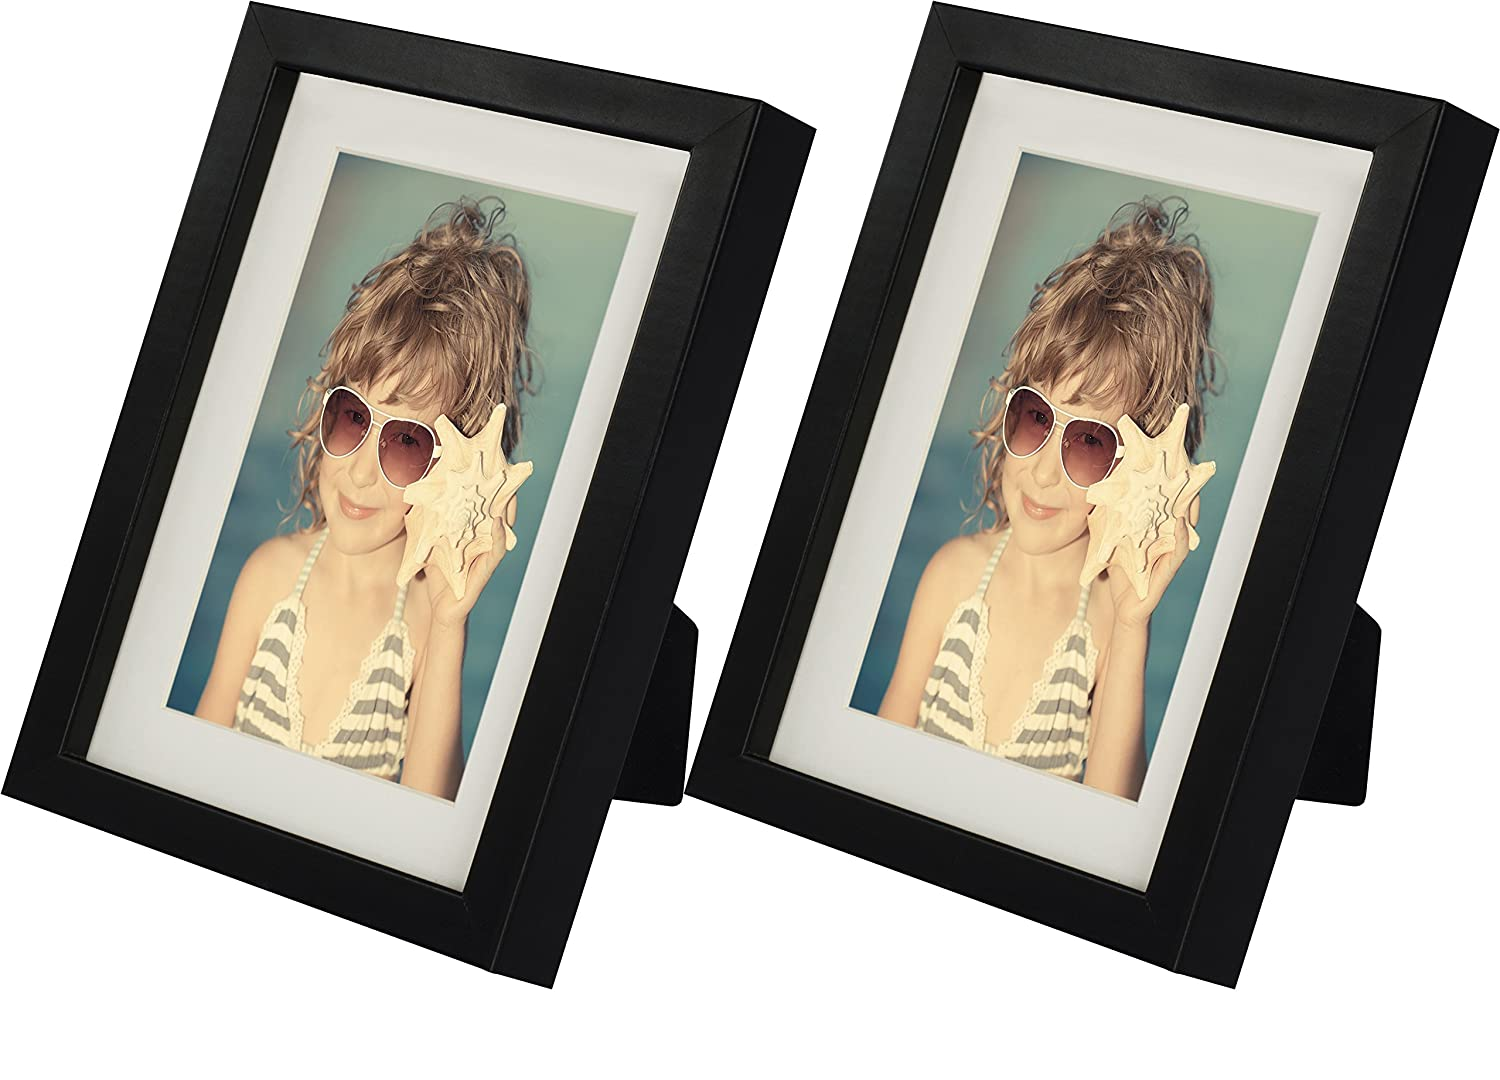 BD ART 4 x 6-Inch Picture Photo Frame - 2 Pack, WHITE